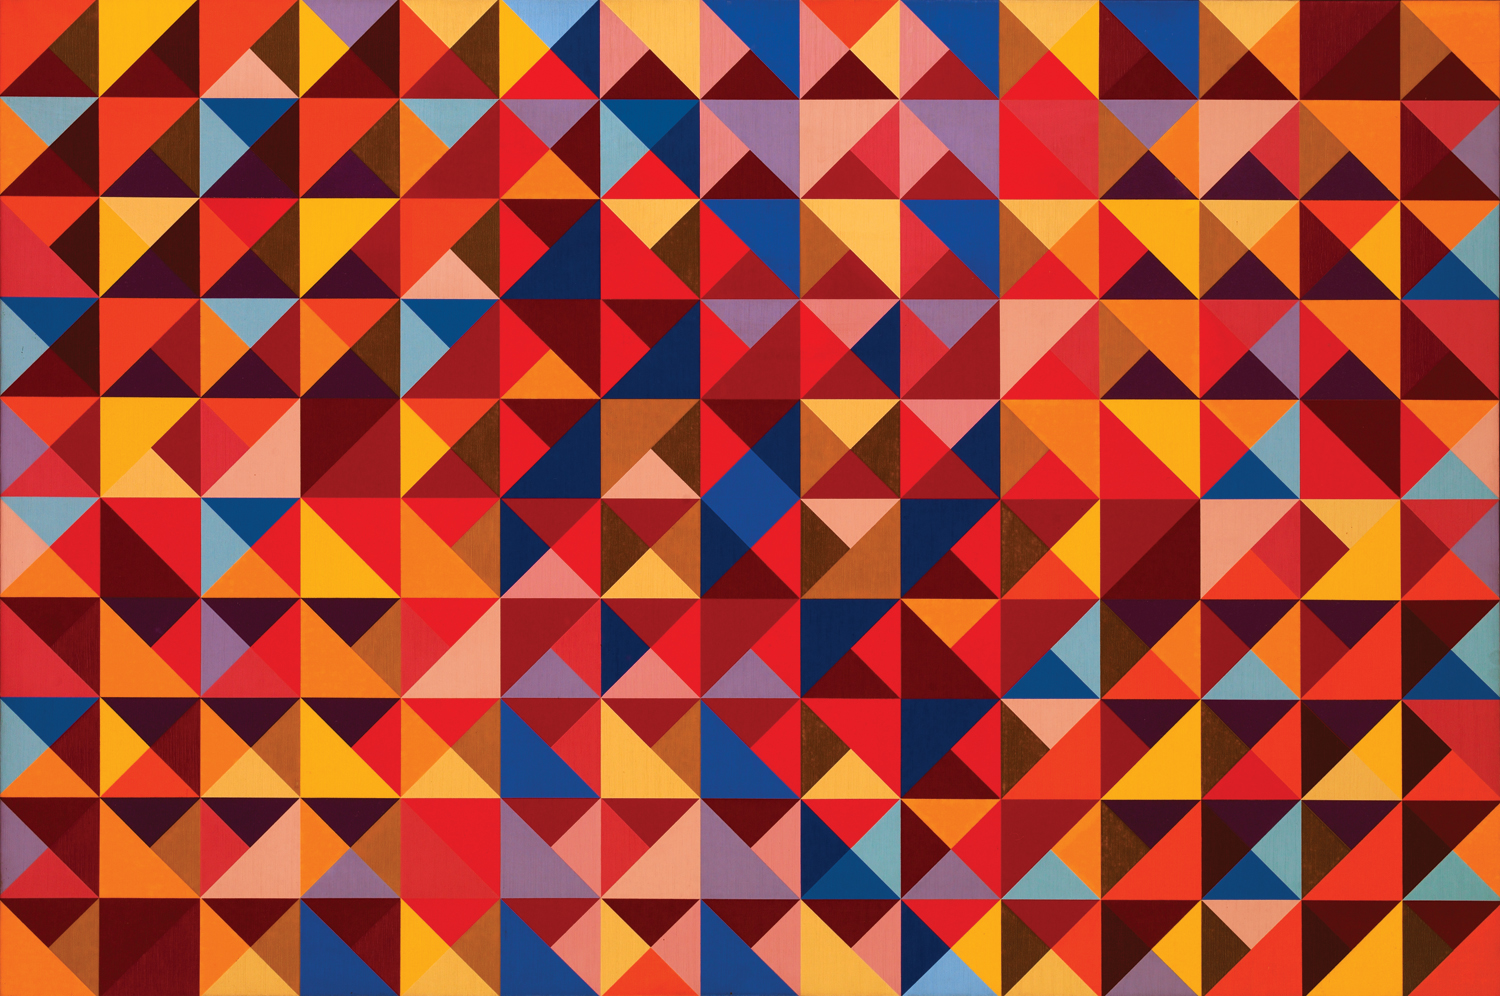 #7 , 1966  oil on canvas 40 x 60 inches; 101.6 x 152.4 centimeters